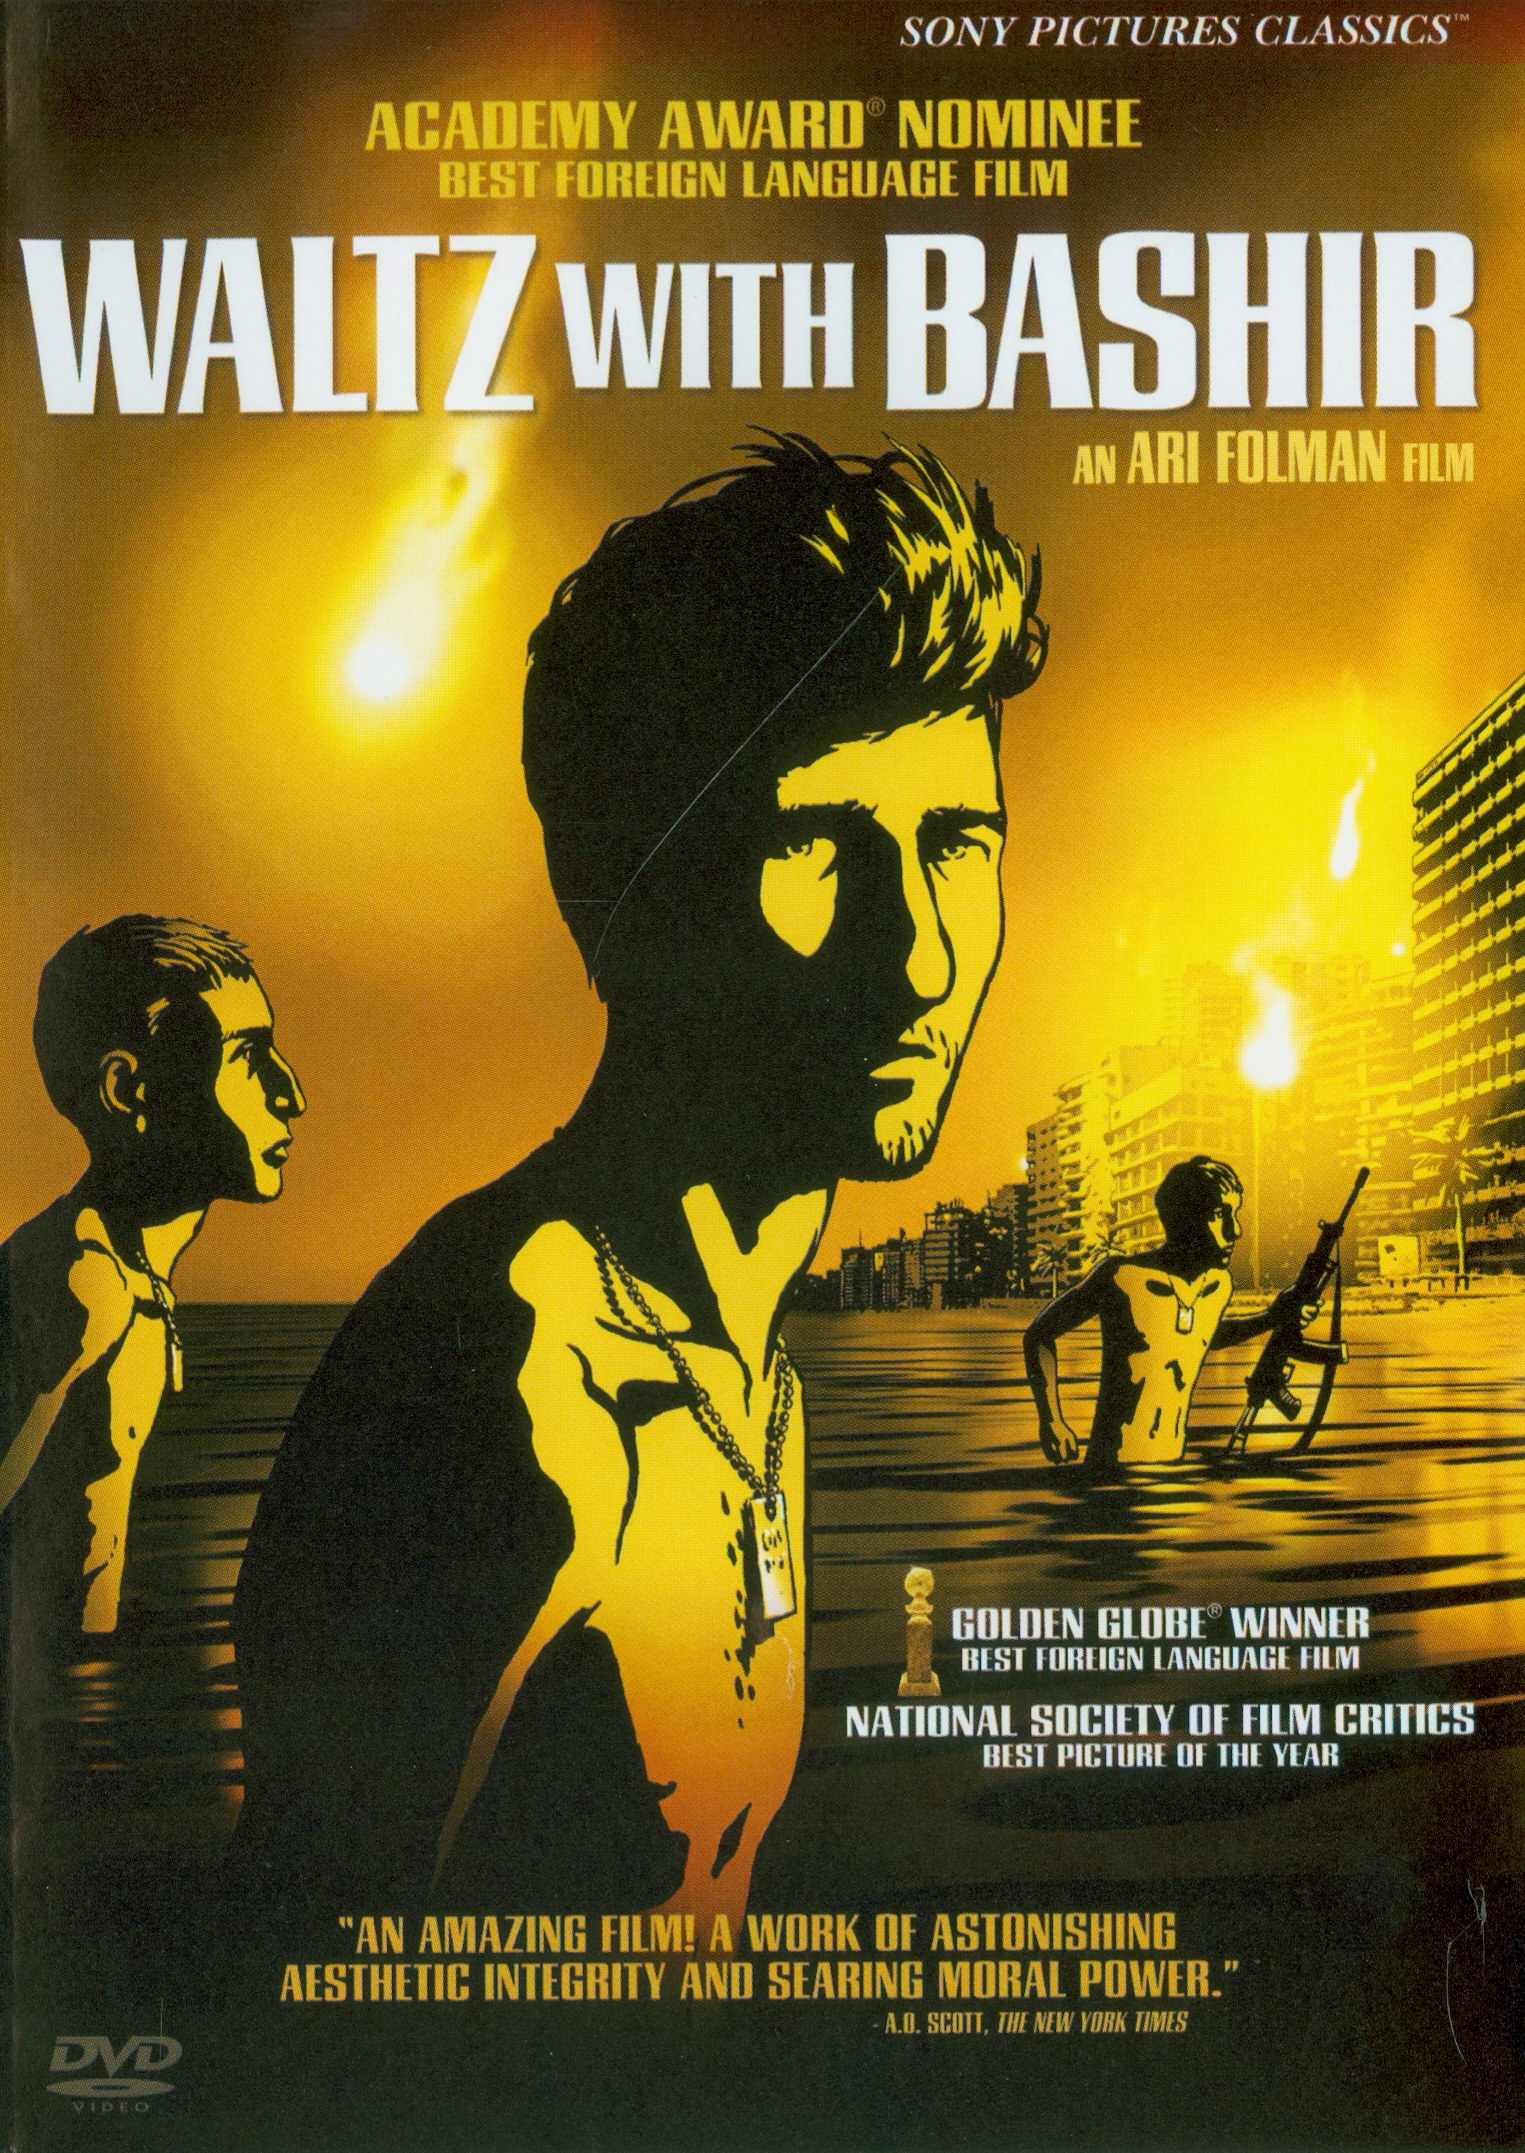 Waltz with Bashir[videorecording] /Sony Pictures Classics ; Bridgit Folman Film Gang, produced by Ari Folman ; producers, Serge Lalou ... [et al.]